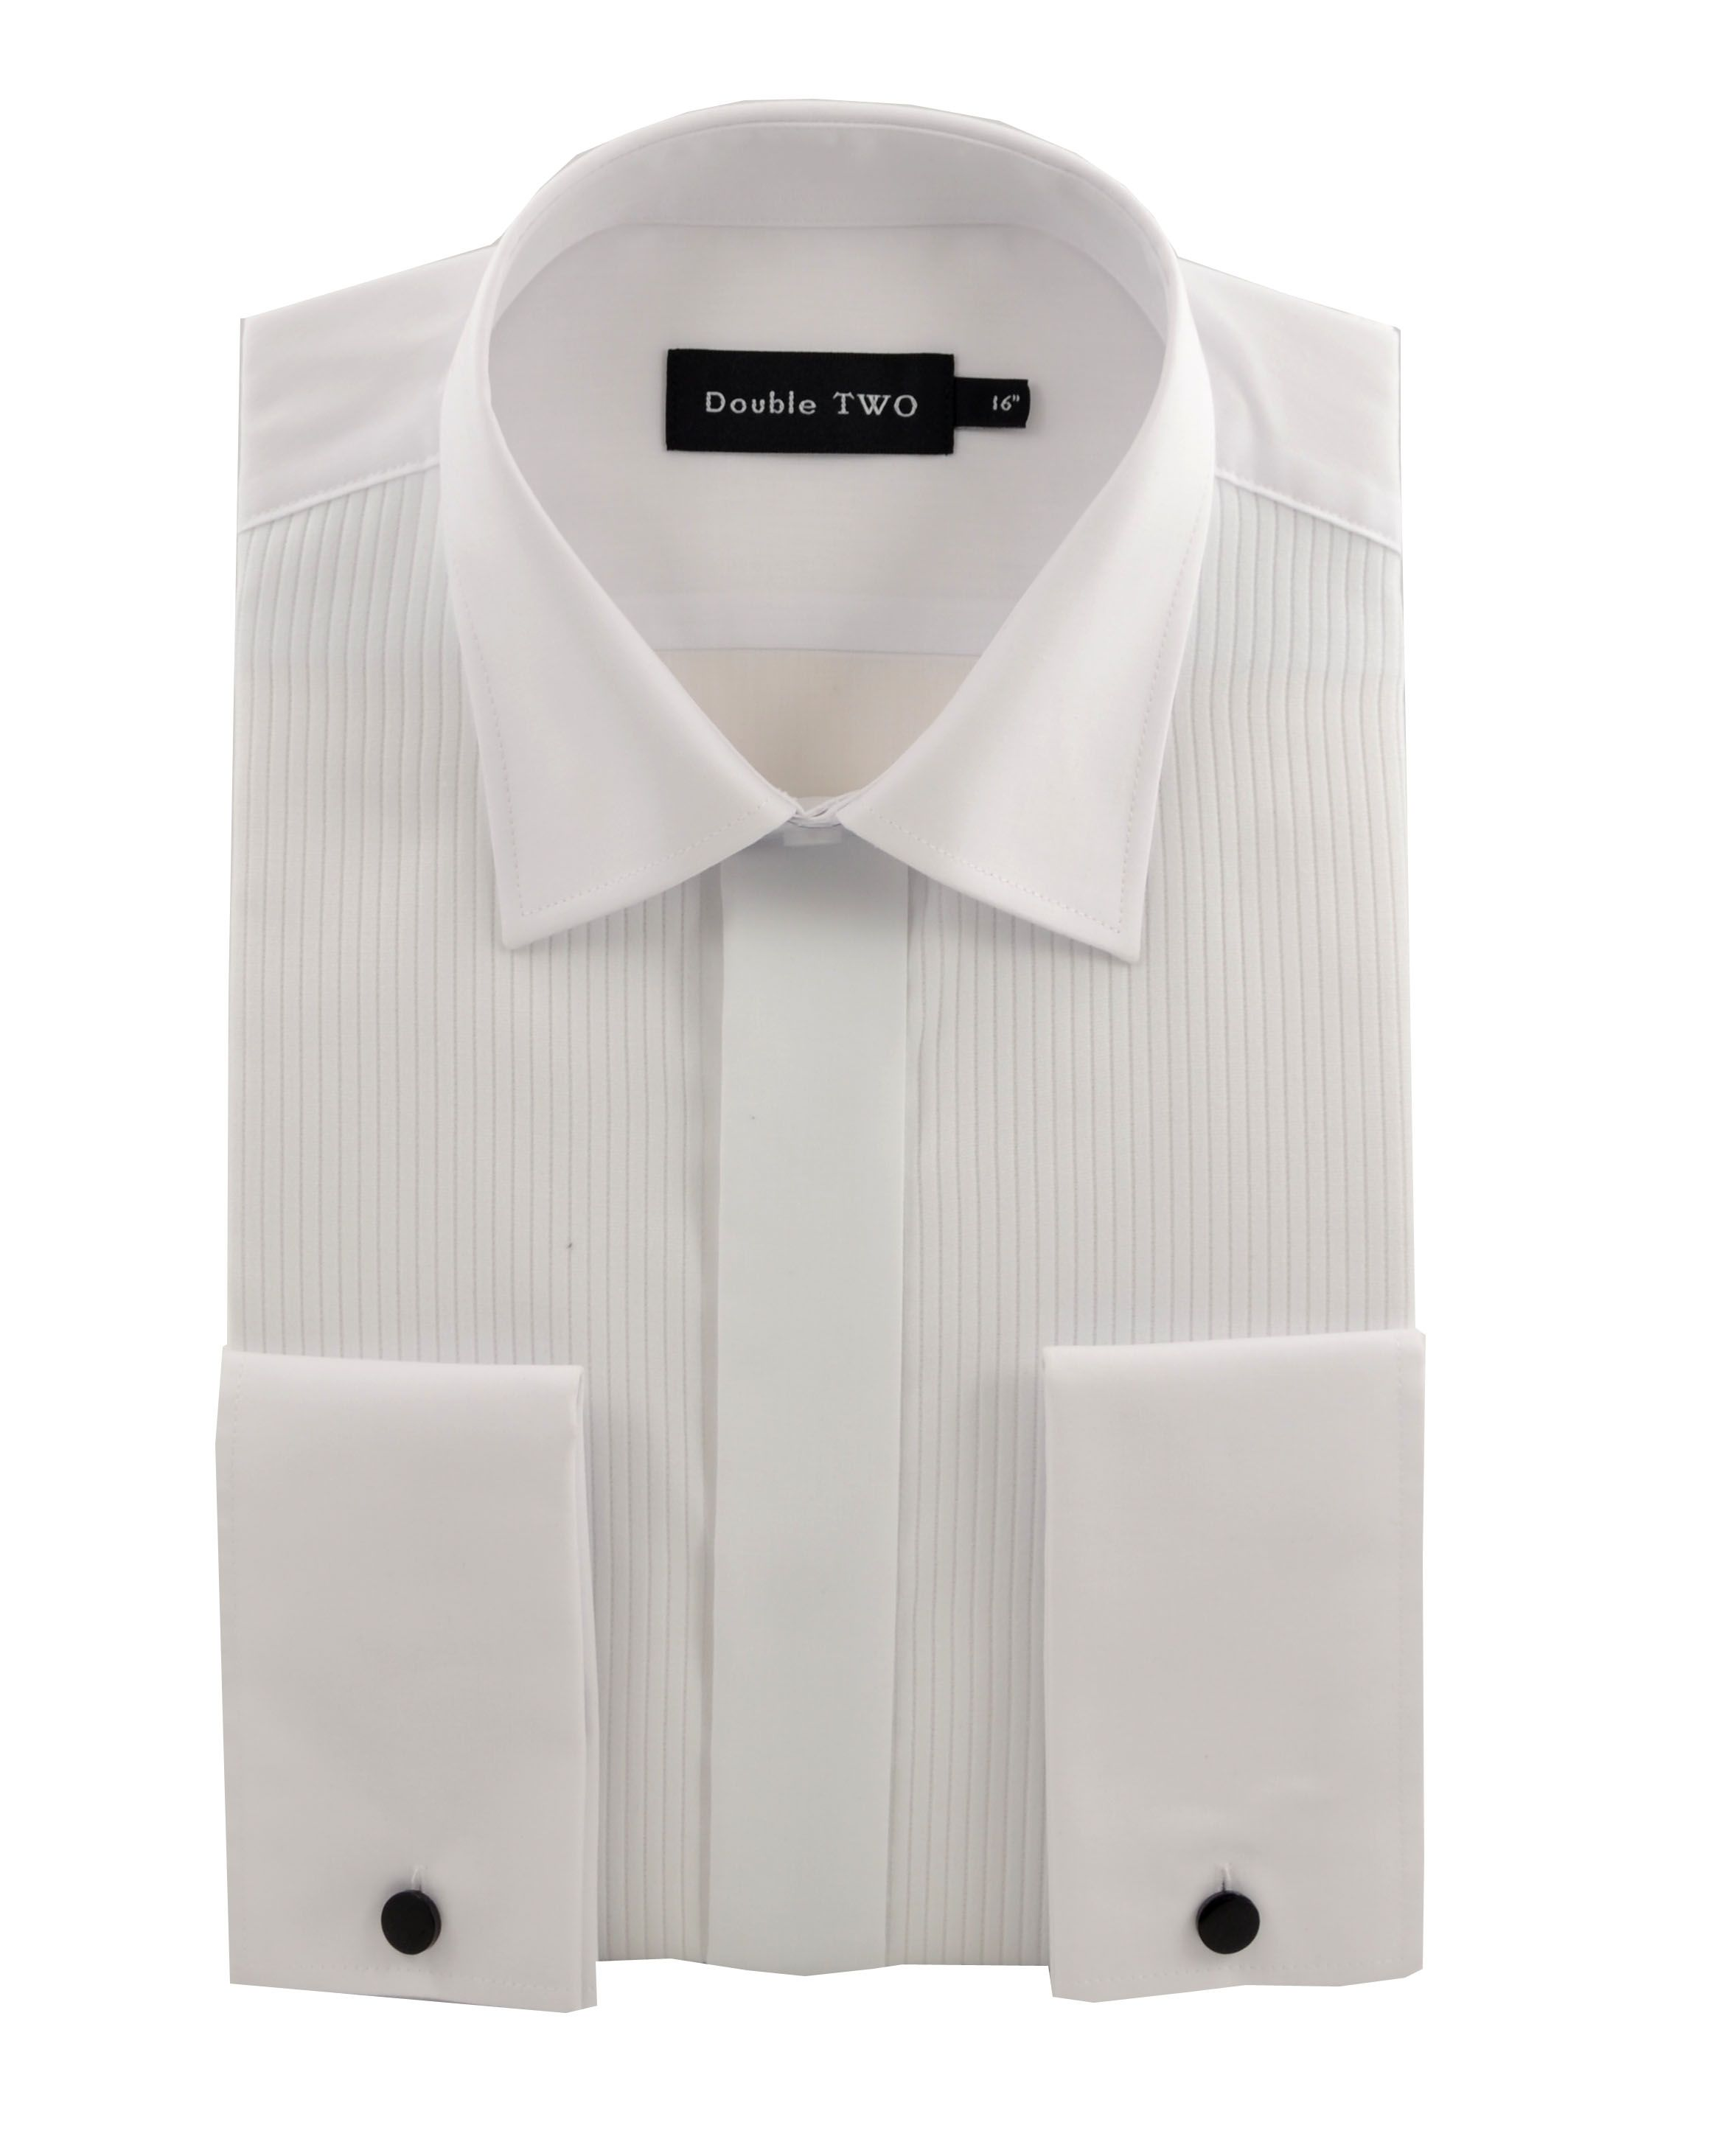 King Size ribbed pique dress shirt